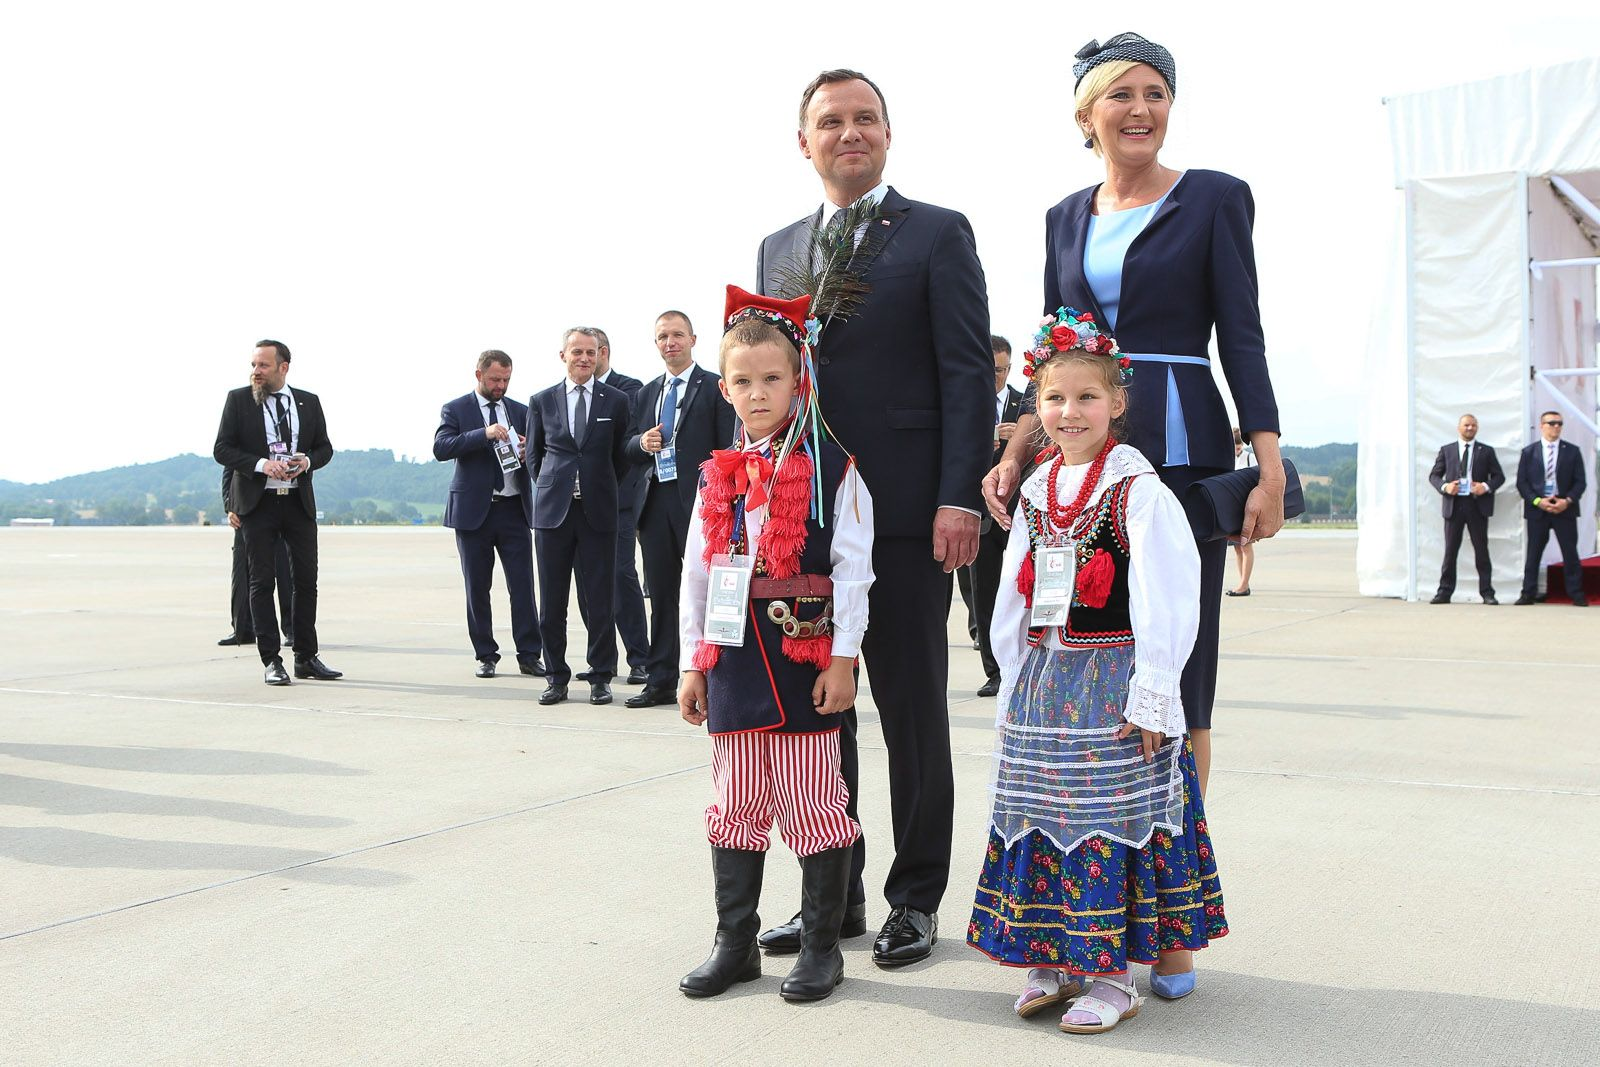 waiting for Pope... young Polish children in folk clothing from Krakow region